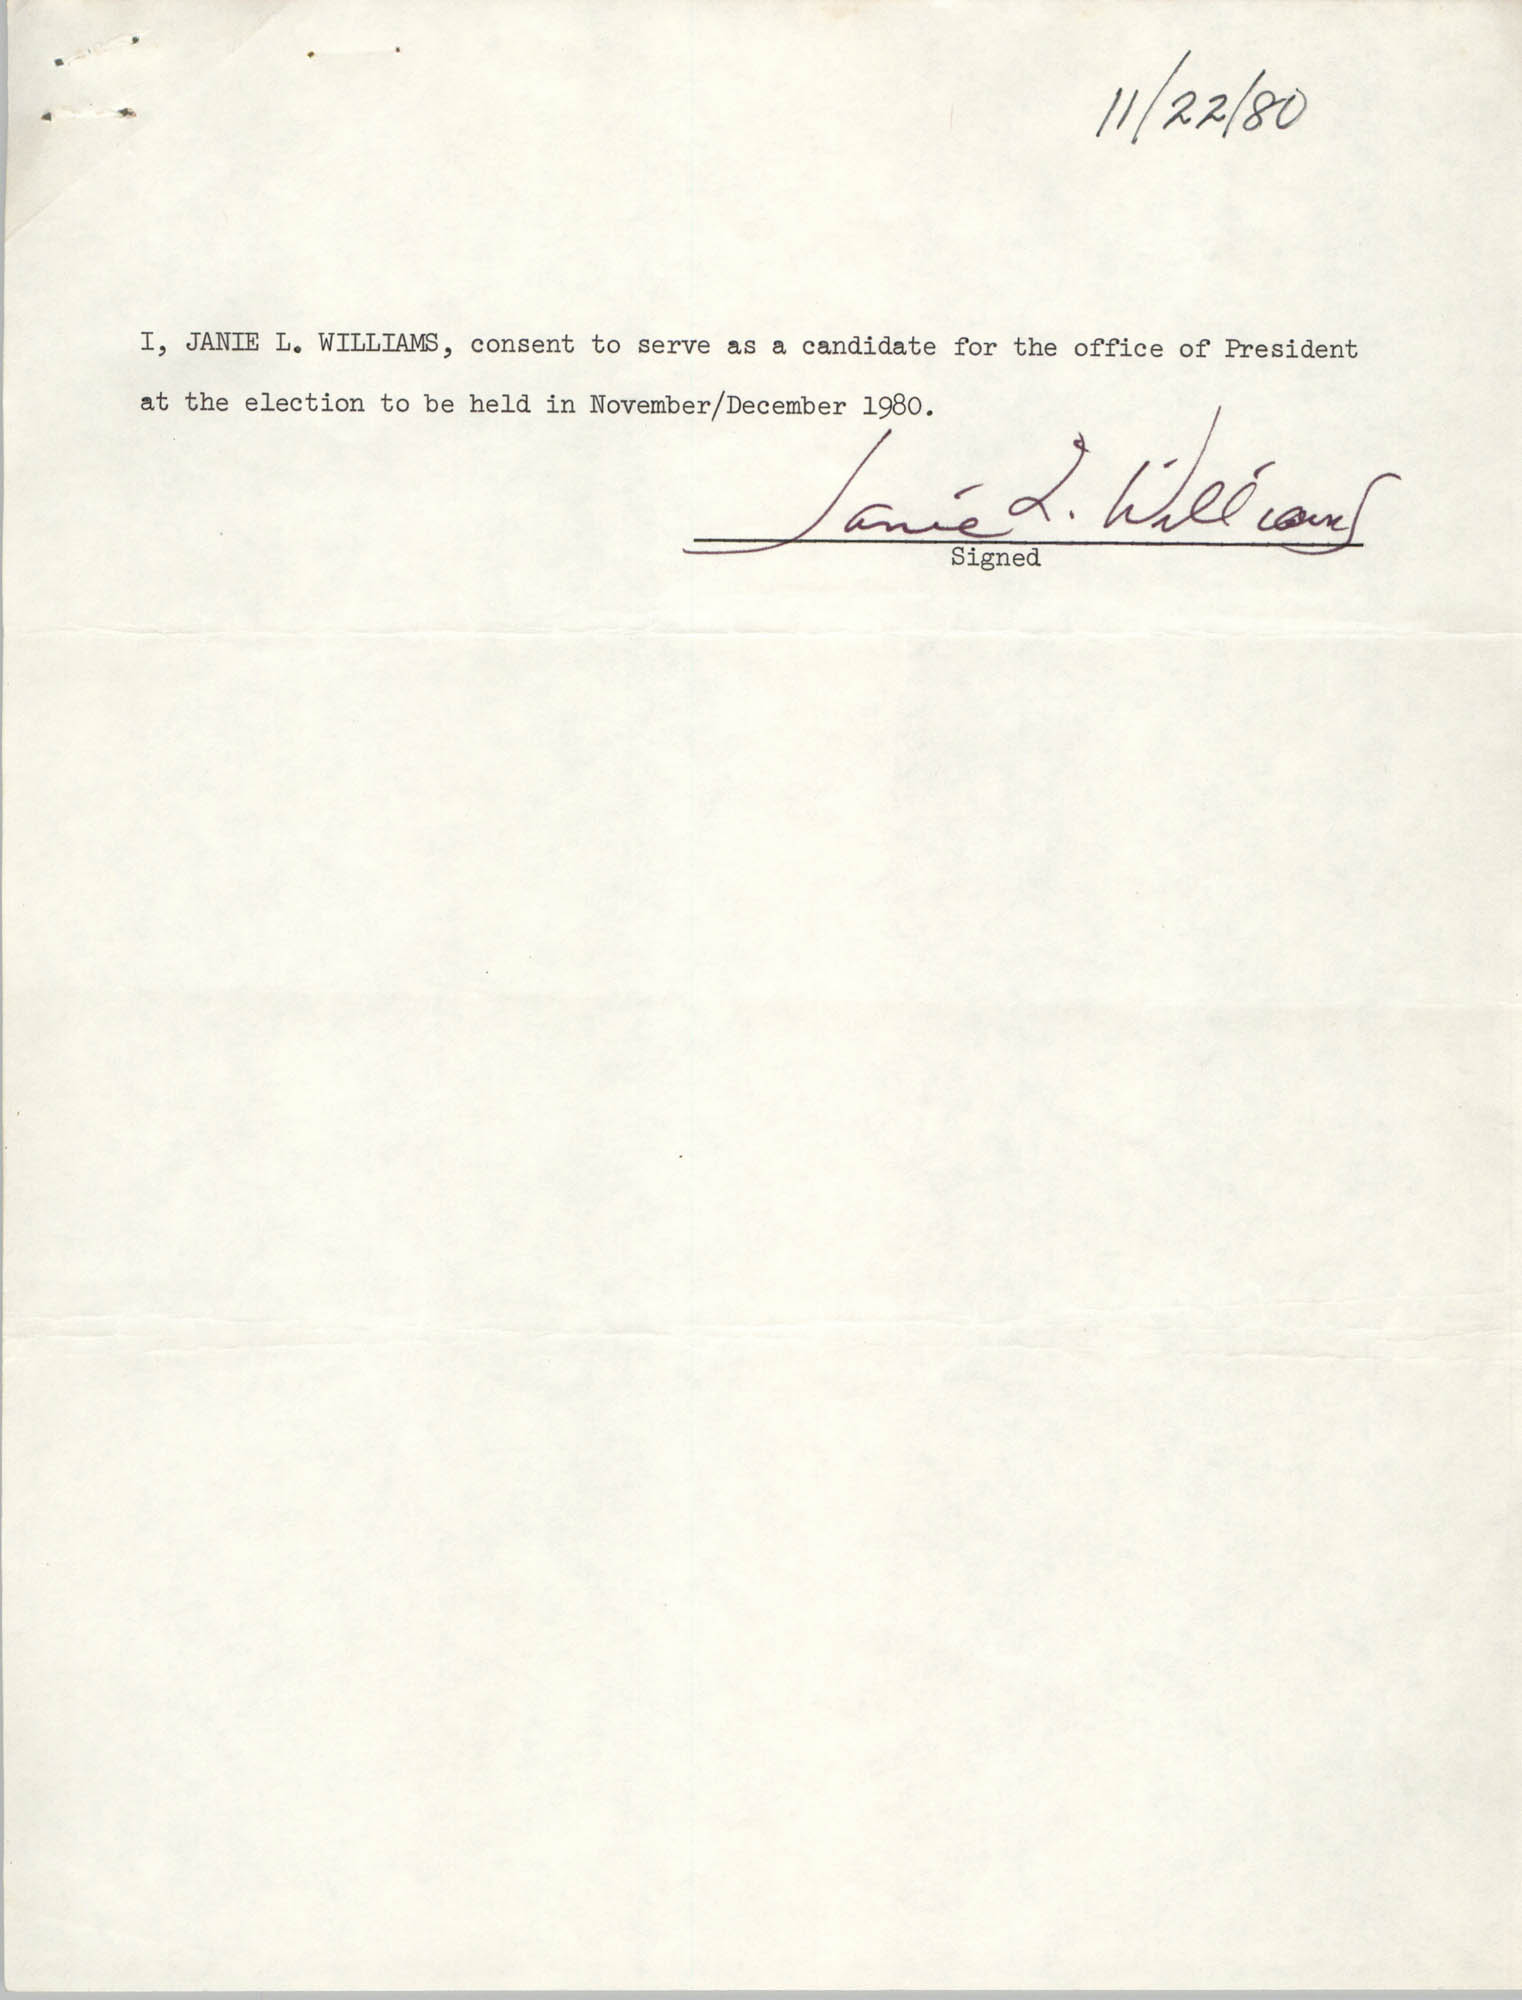 Charleston Branch of the NAACP Election Materials, Janie L. Williams Consent Form